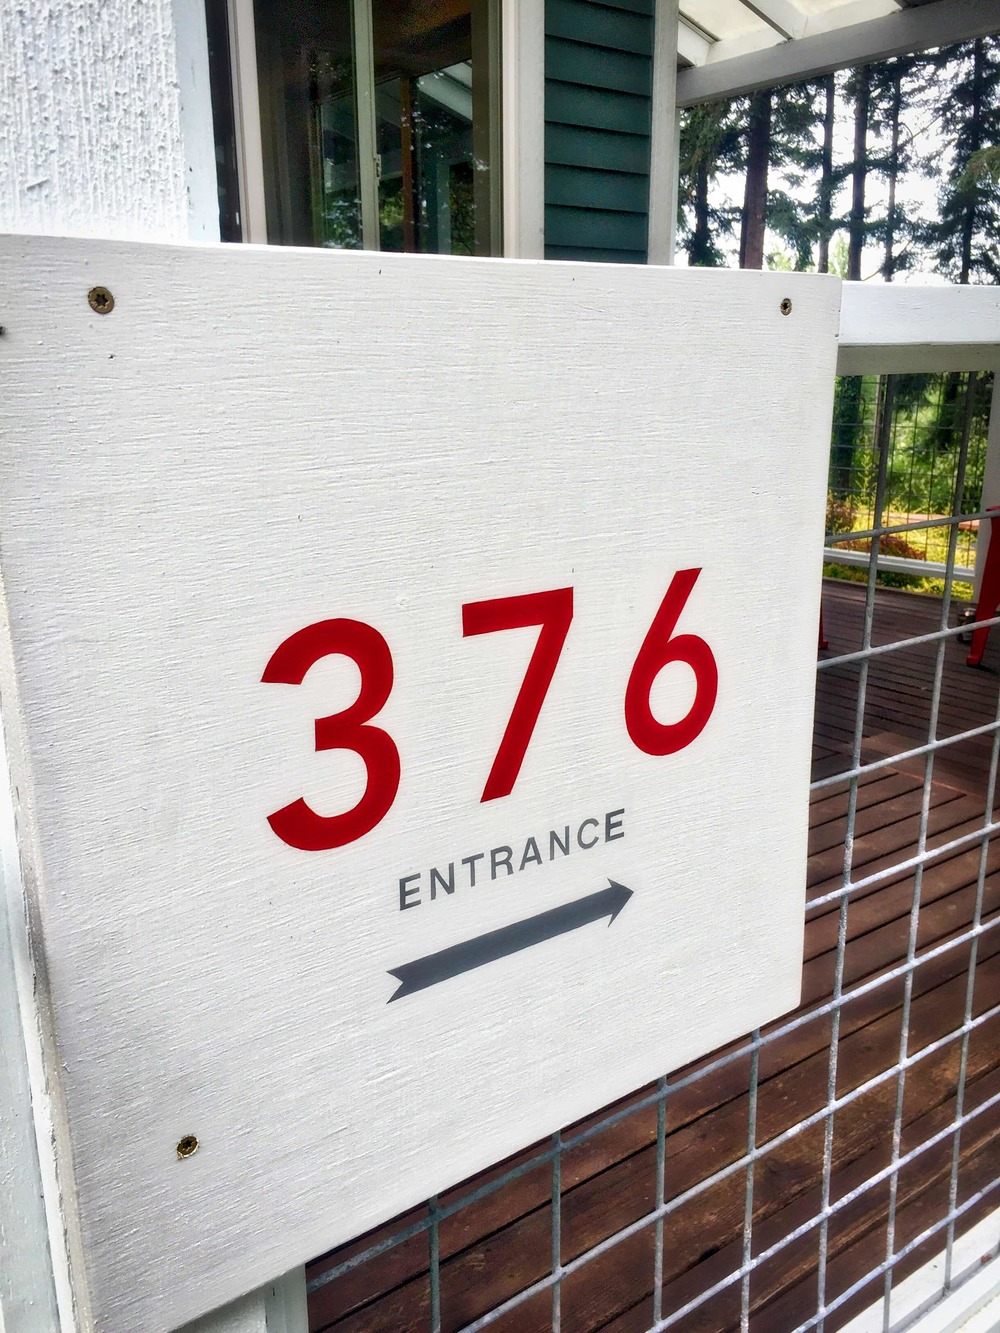 Did you know? 376 is the 3-digit prefix for telephone numbers on Orcas Island.